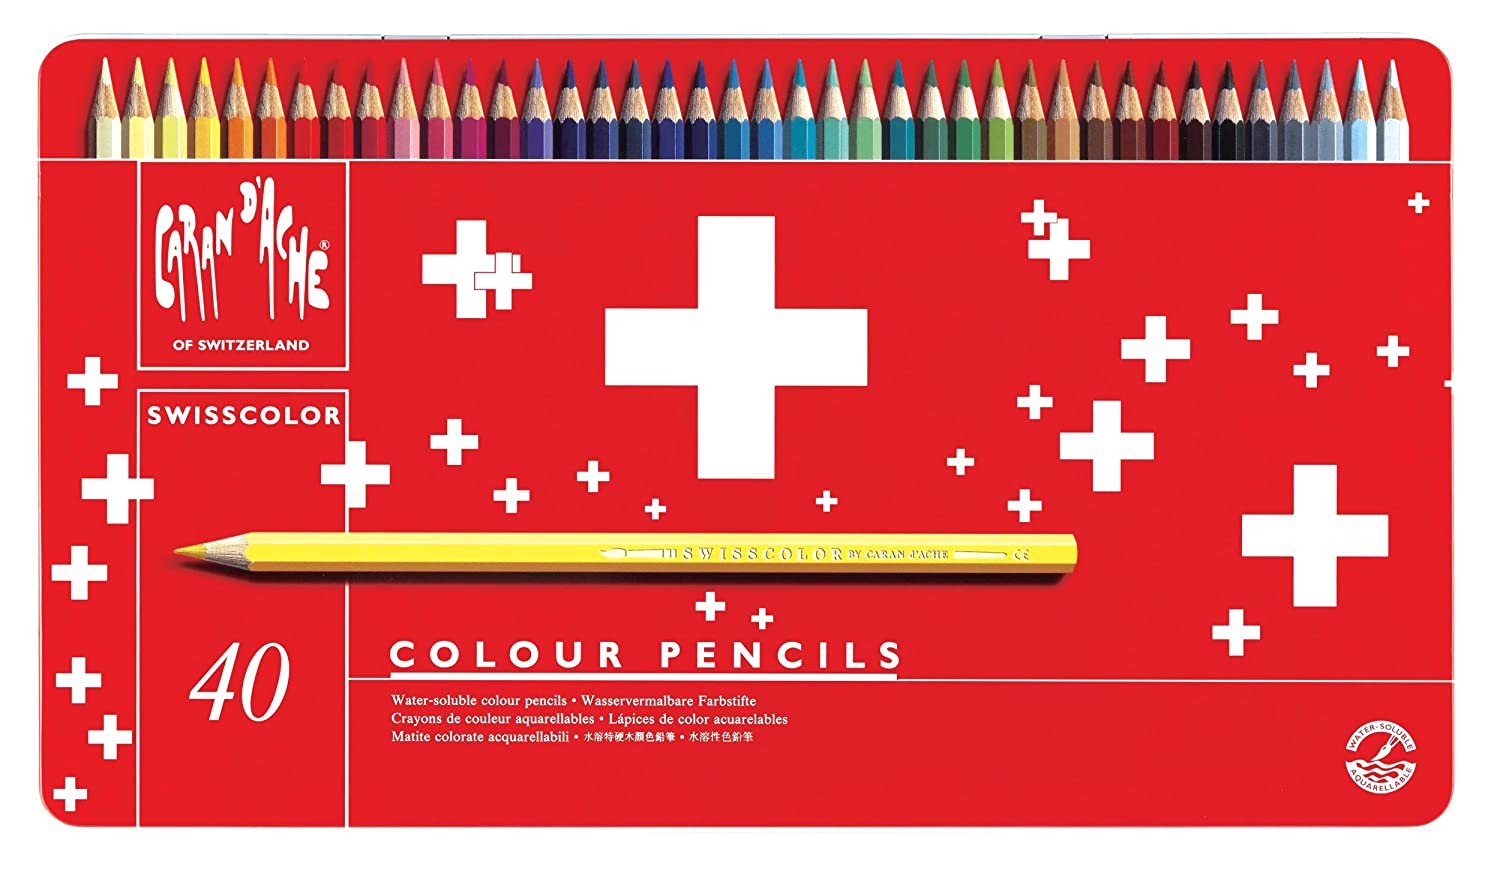 Caran D'ache Swisscolor Colour Pencils in Metal Box (Pack of 40) Caran d'Ache 1285.740 reikos_0019522742AM_0003115